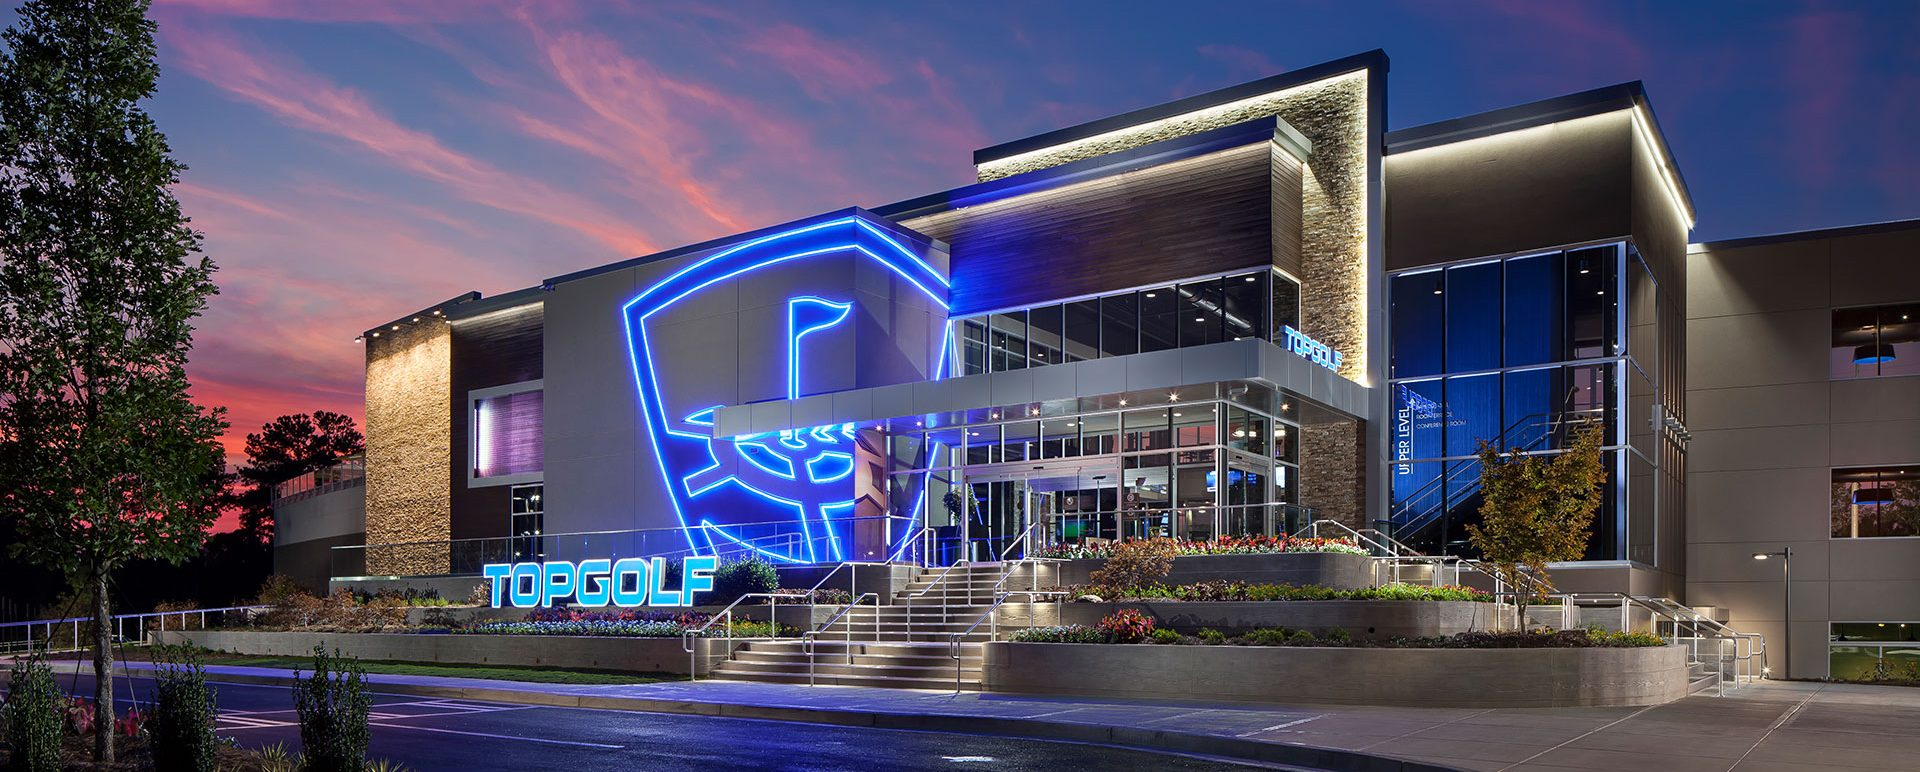 Topgolf Atlanta 3